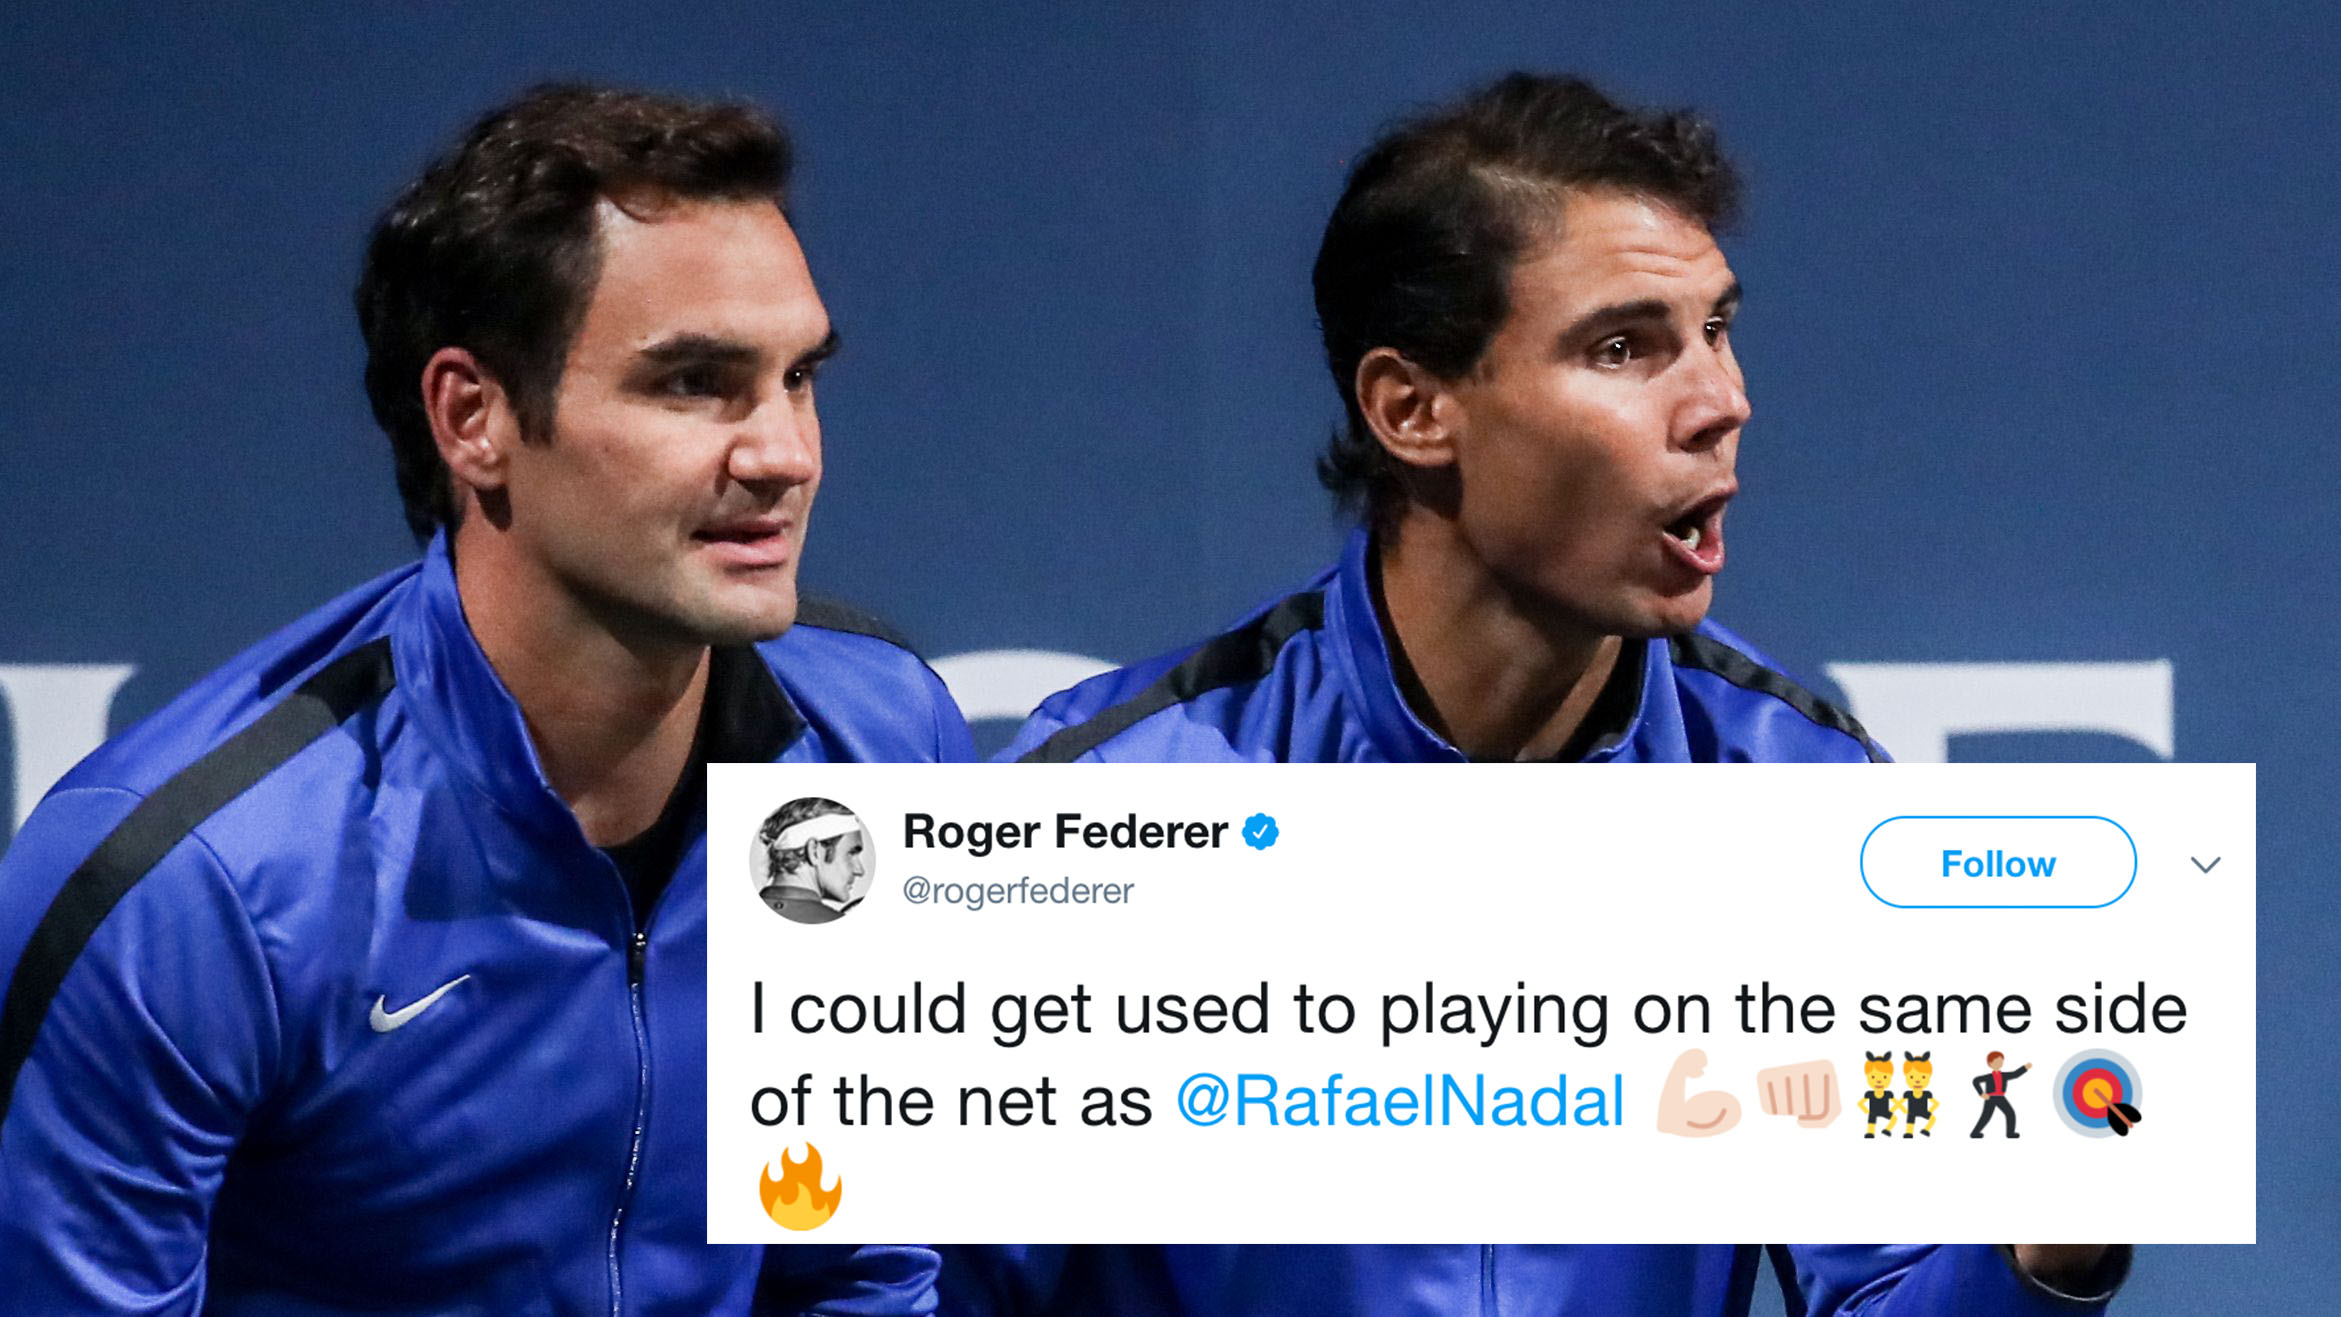 Federer And Nadal Turned Their Rivalry Into The World S Ultimate Tennis Bromance